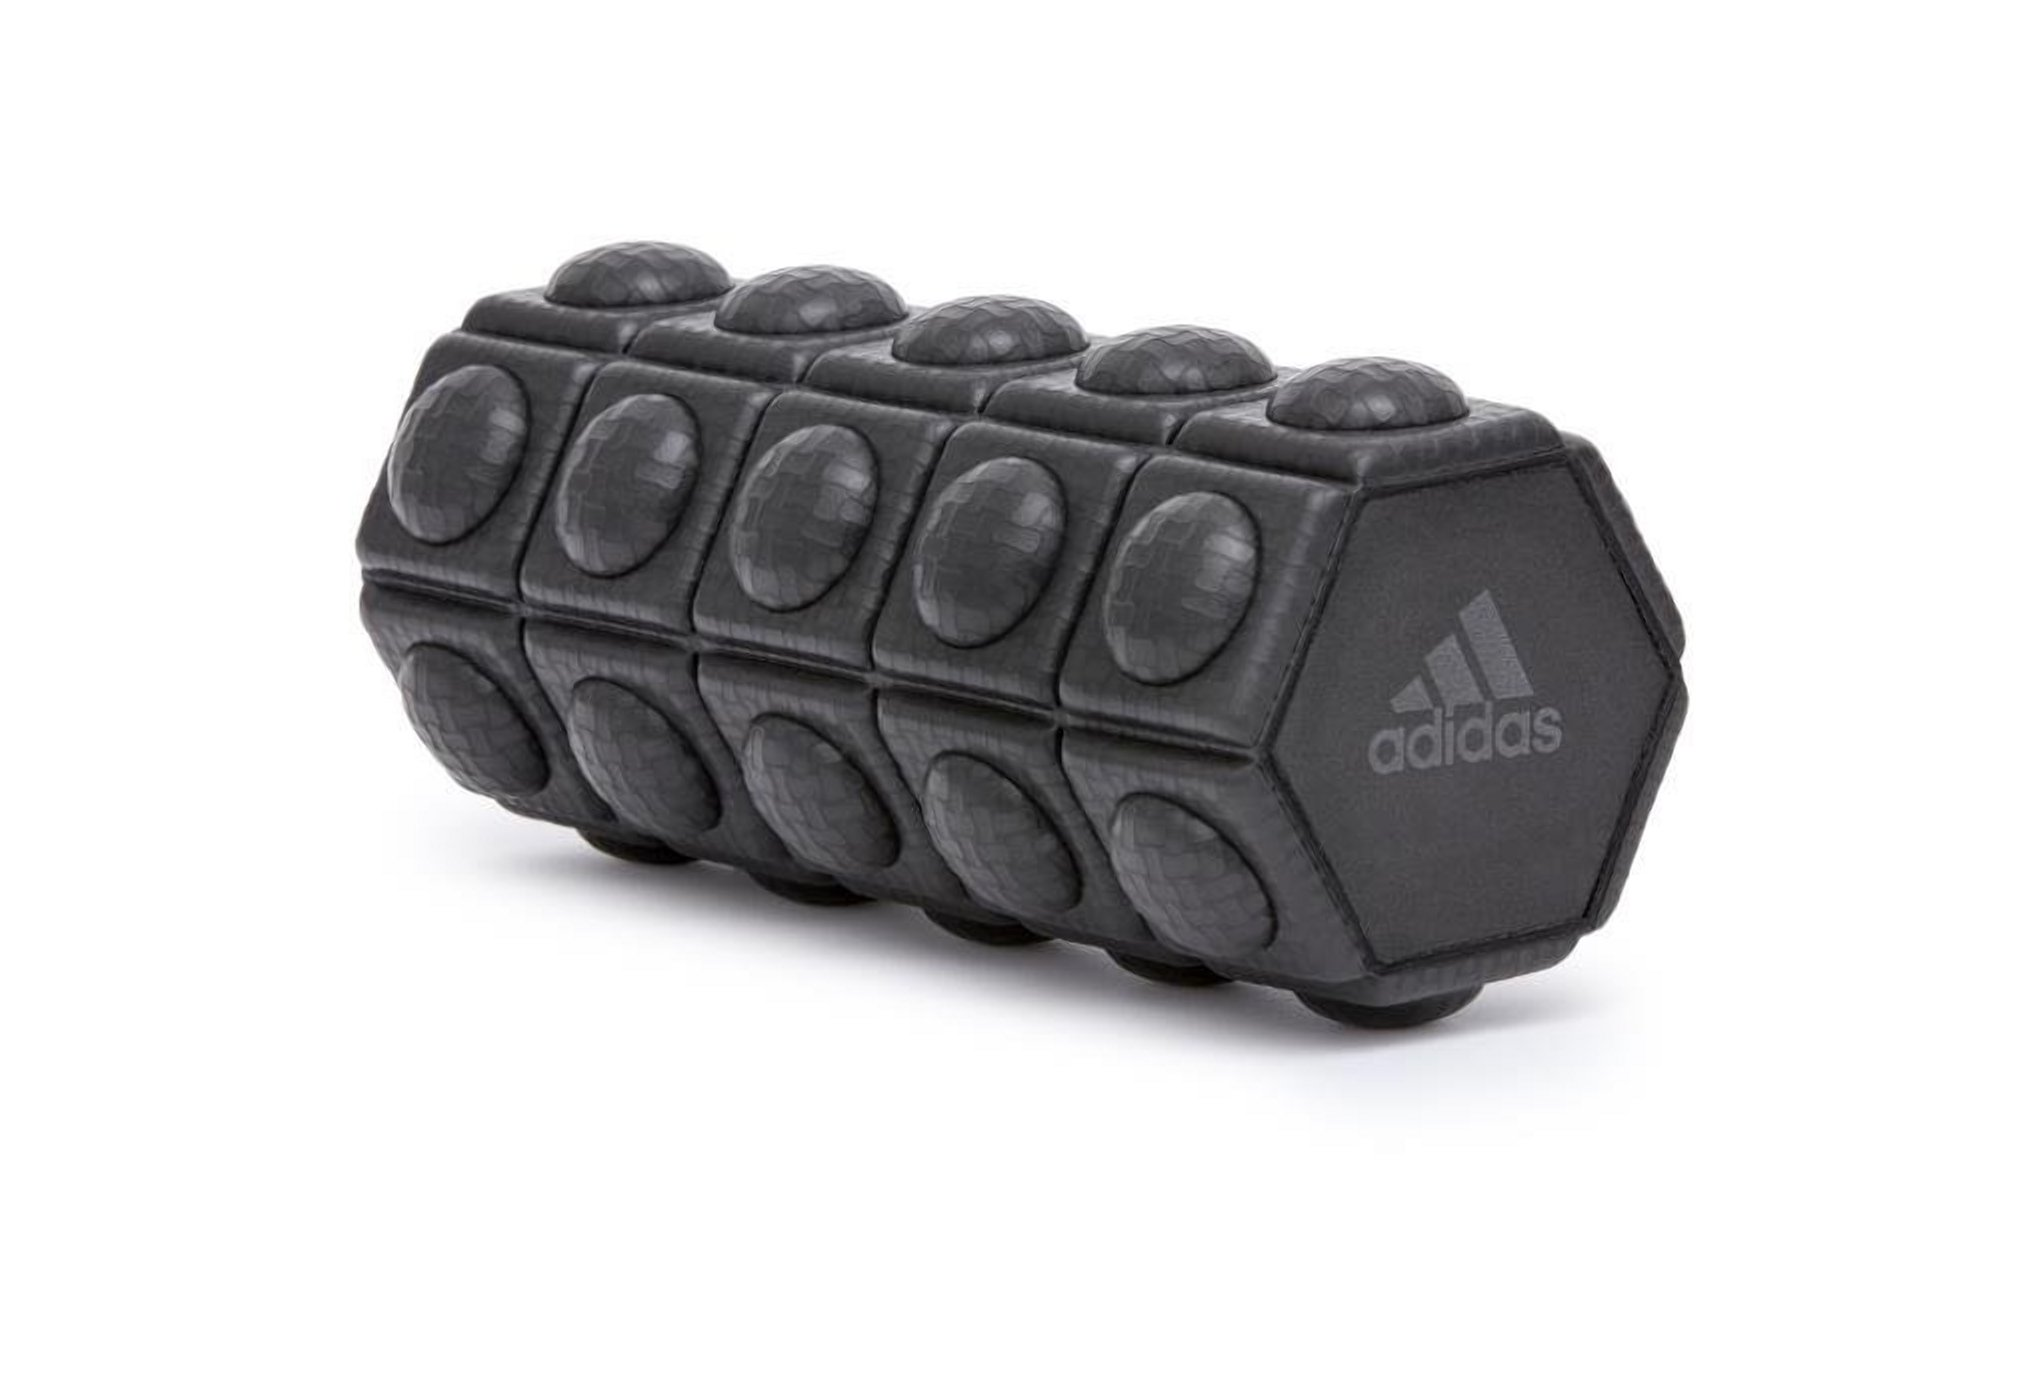 adidas Mini Foam Roller - 18 cm Training